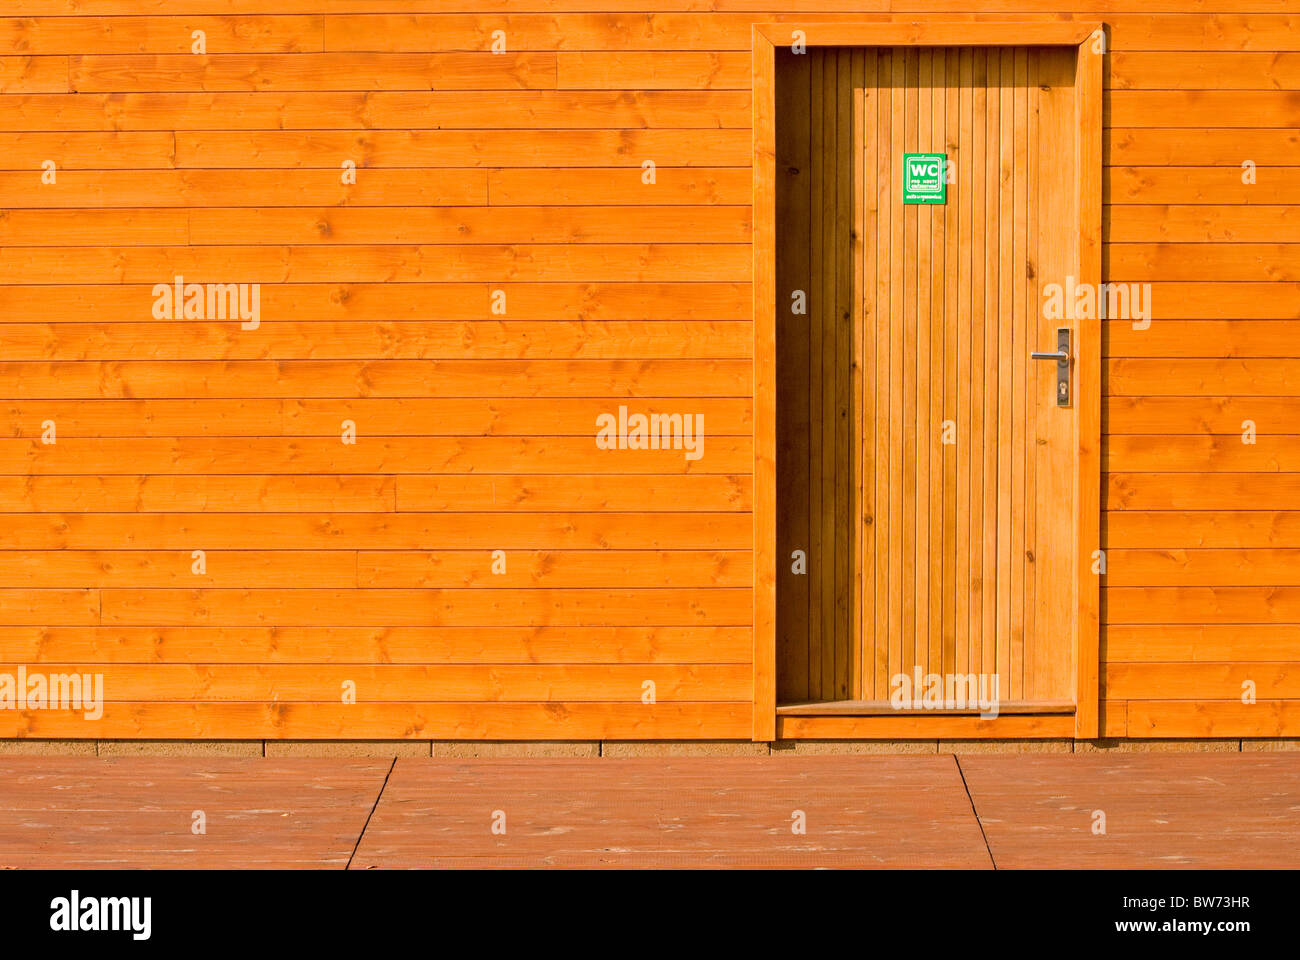 door entrance to a WC - Stock Image